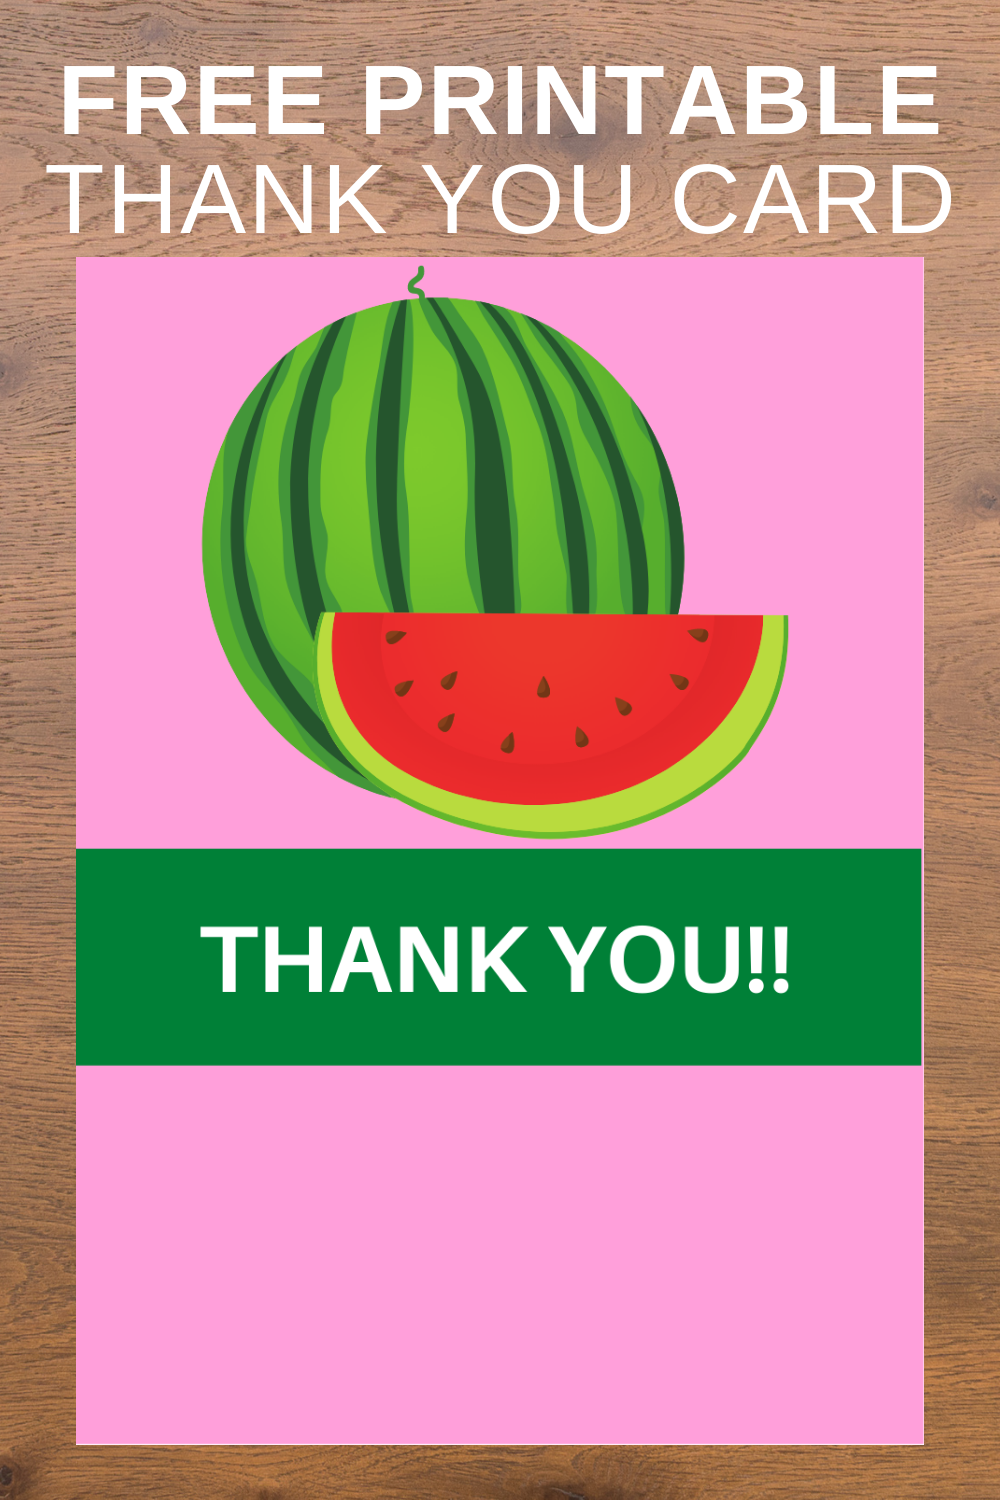 free printable watermelon thank you note for toddlers birthday party